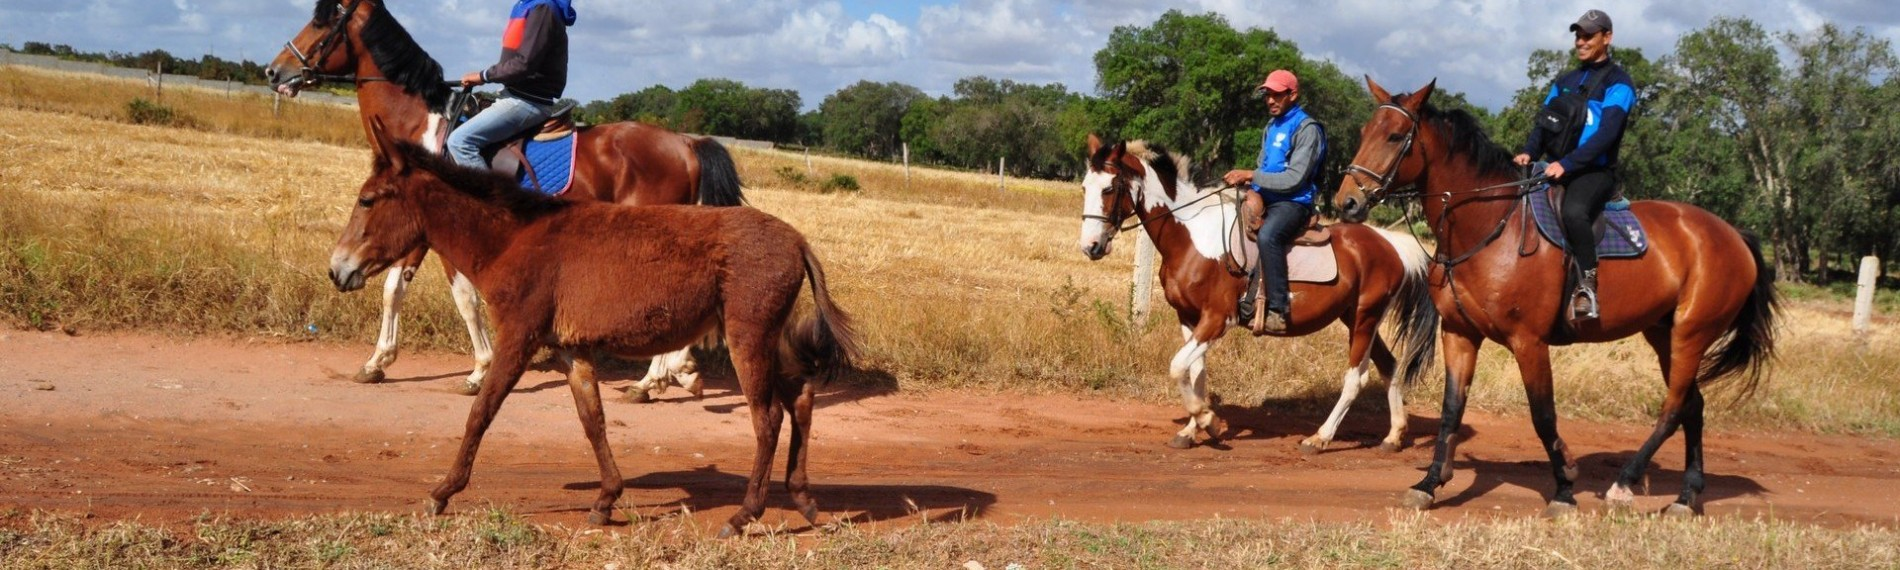 Equestrian Trips in Morocco